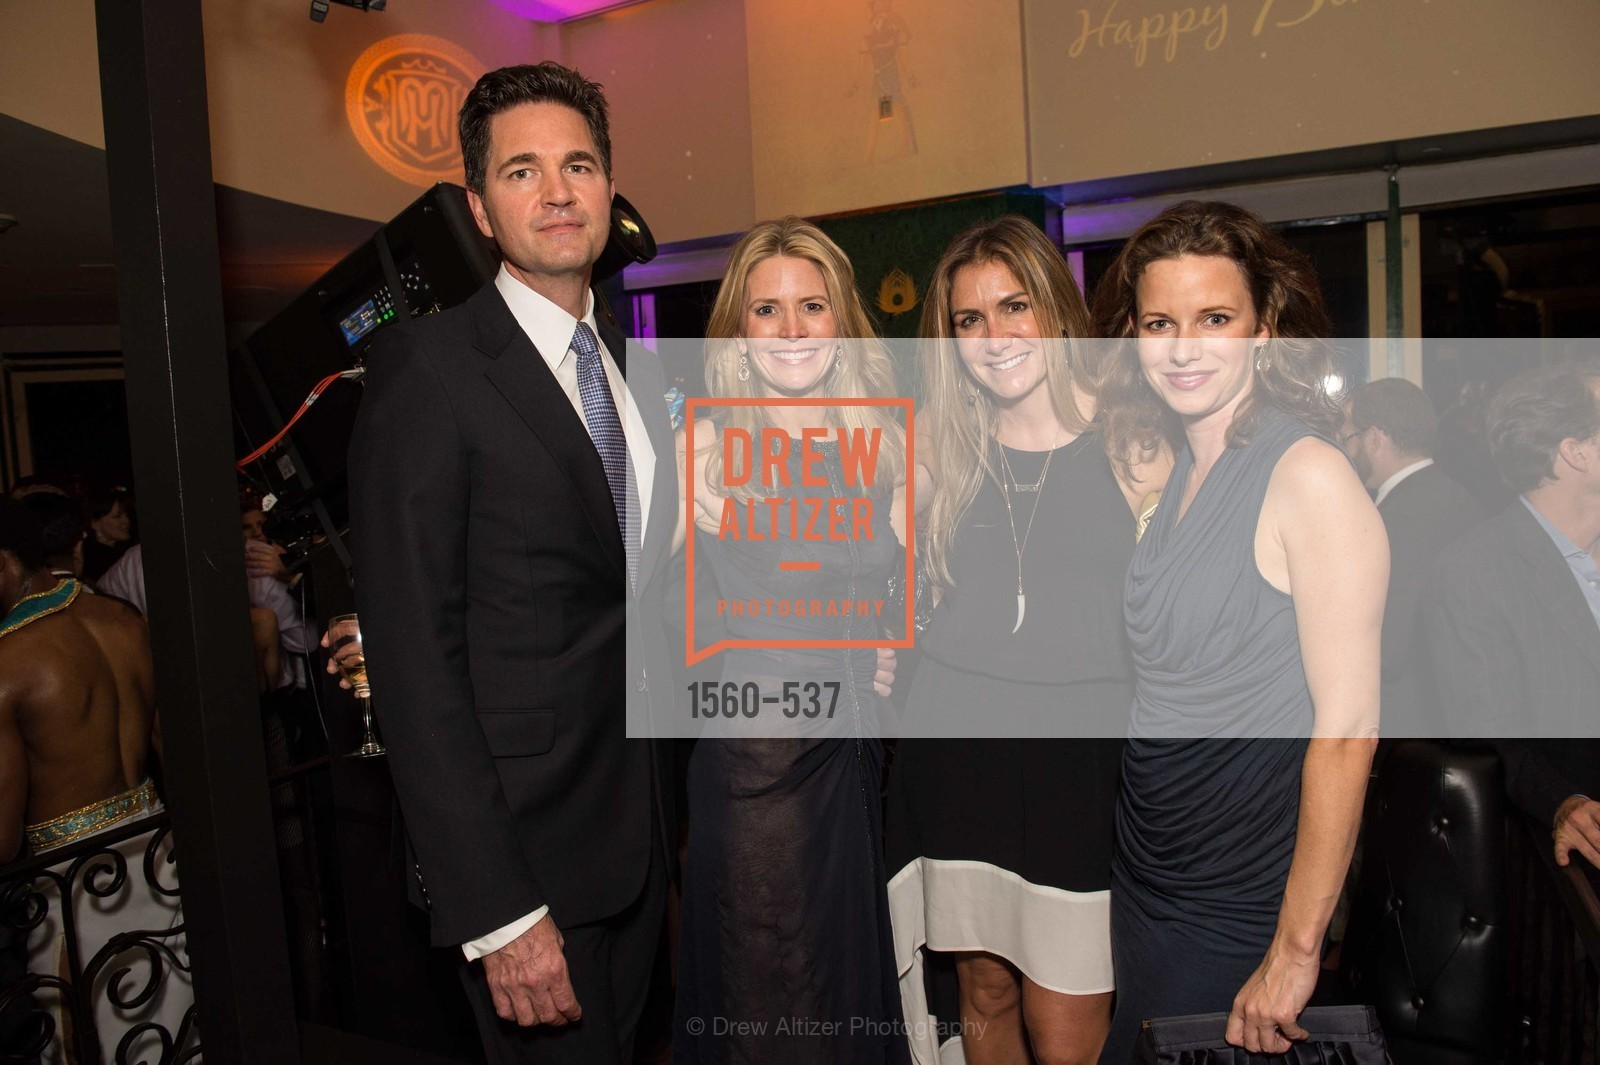 Alex Chases, Ann Millham-Miller, Marissa Rosen, Lindsay Bolton, TOP OF THE MARK'S 75TH Anniversary Party, US, November 6th, 2014,Drew Altizer, Drew Altizer Photography, full-service agency, private events, San Francisco photographer, photographer california